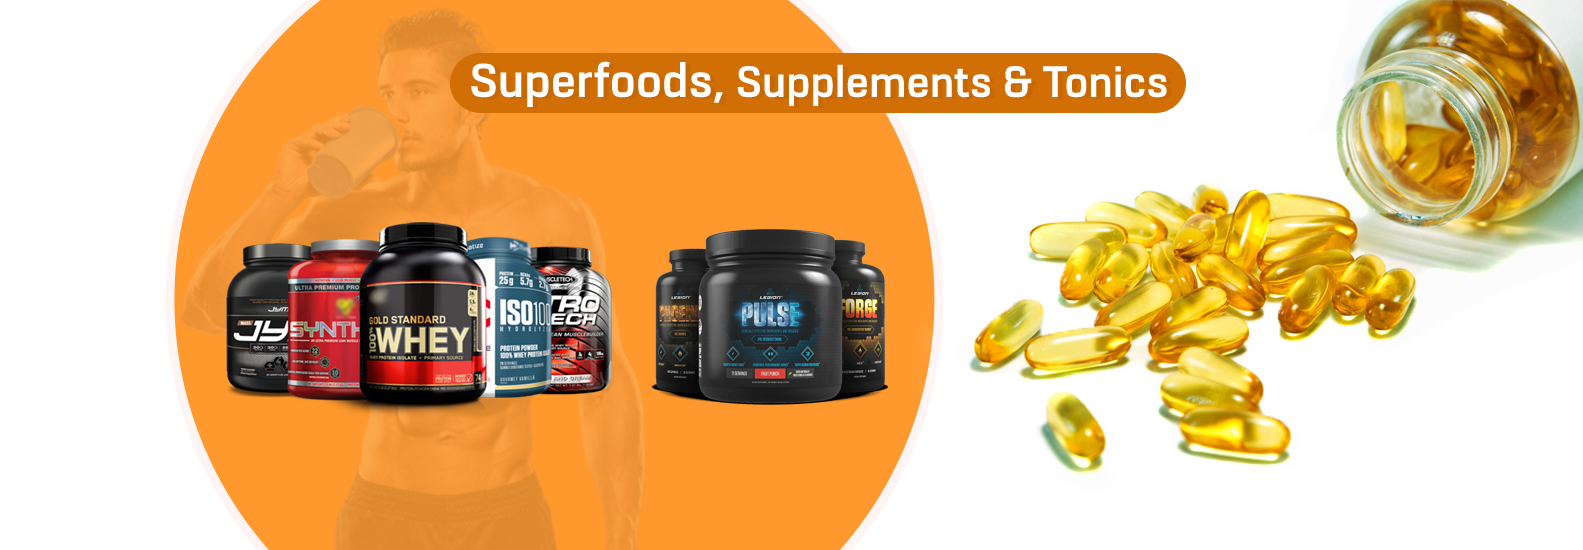 Superfoods, Supplements & Tonic